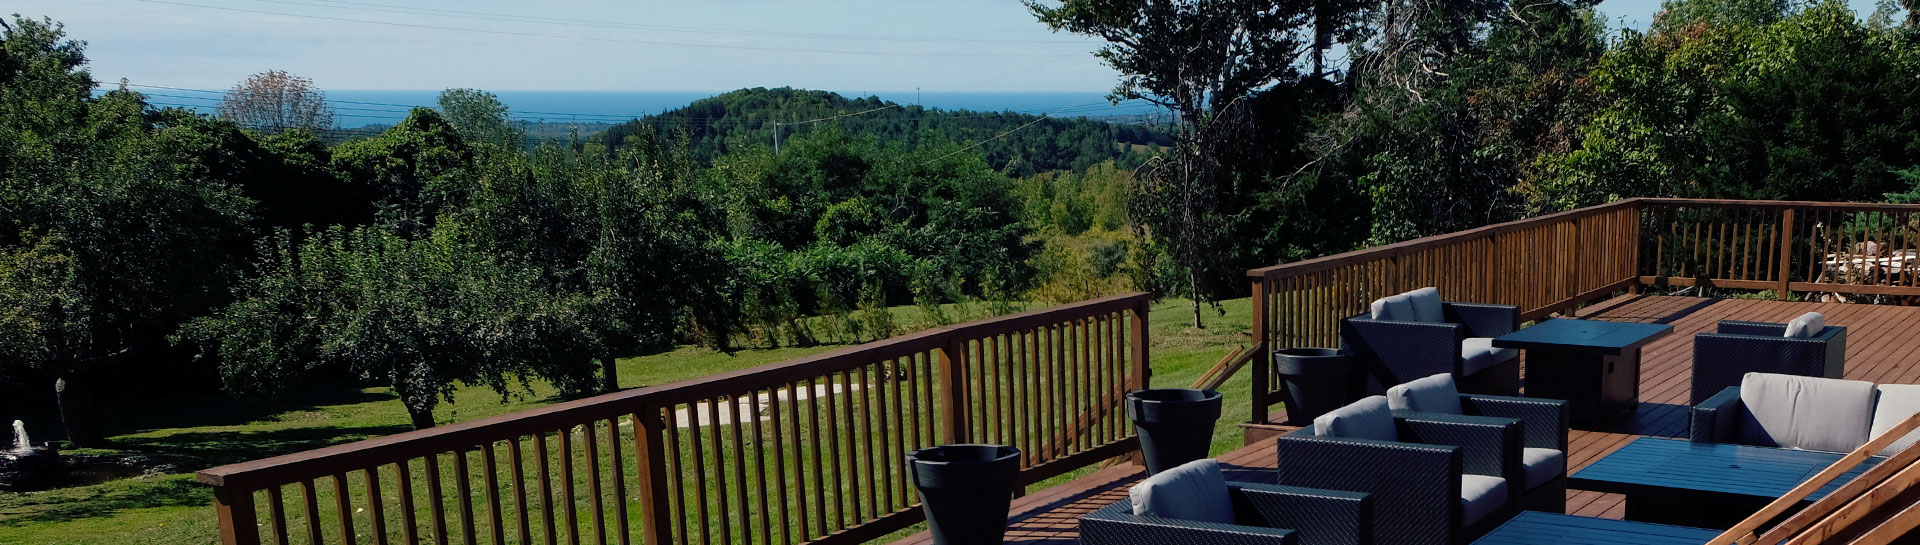 scenic view of rolling hills from patio of Northumberland Heights spa